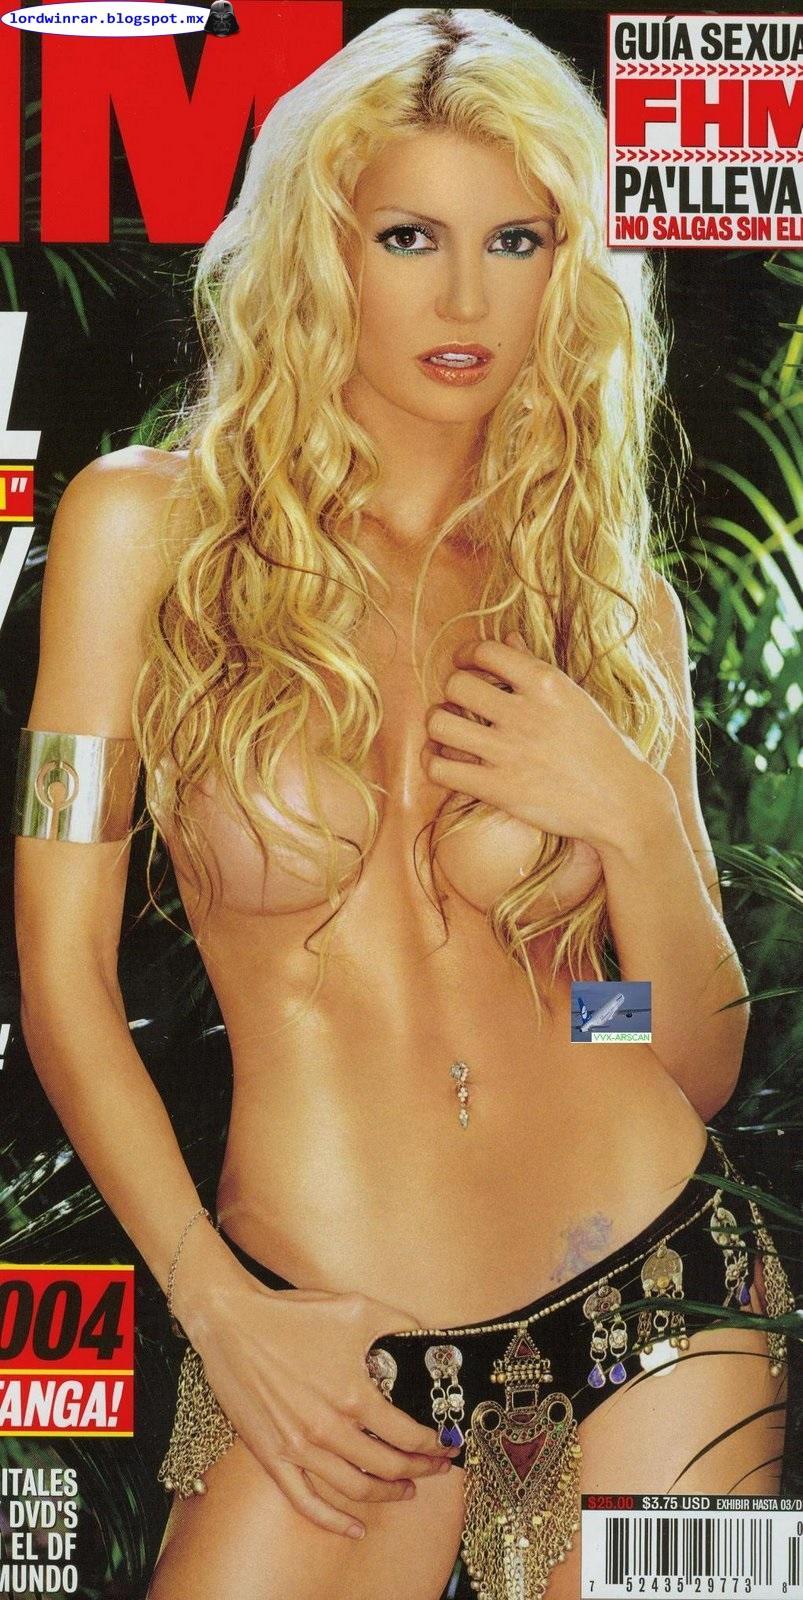 Isabel Madow Nude Pics Cool isabel madow - fhm 2004 noviembre (8 fotos hq) | blog de lord winrar